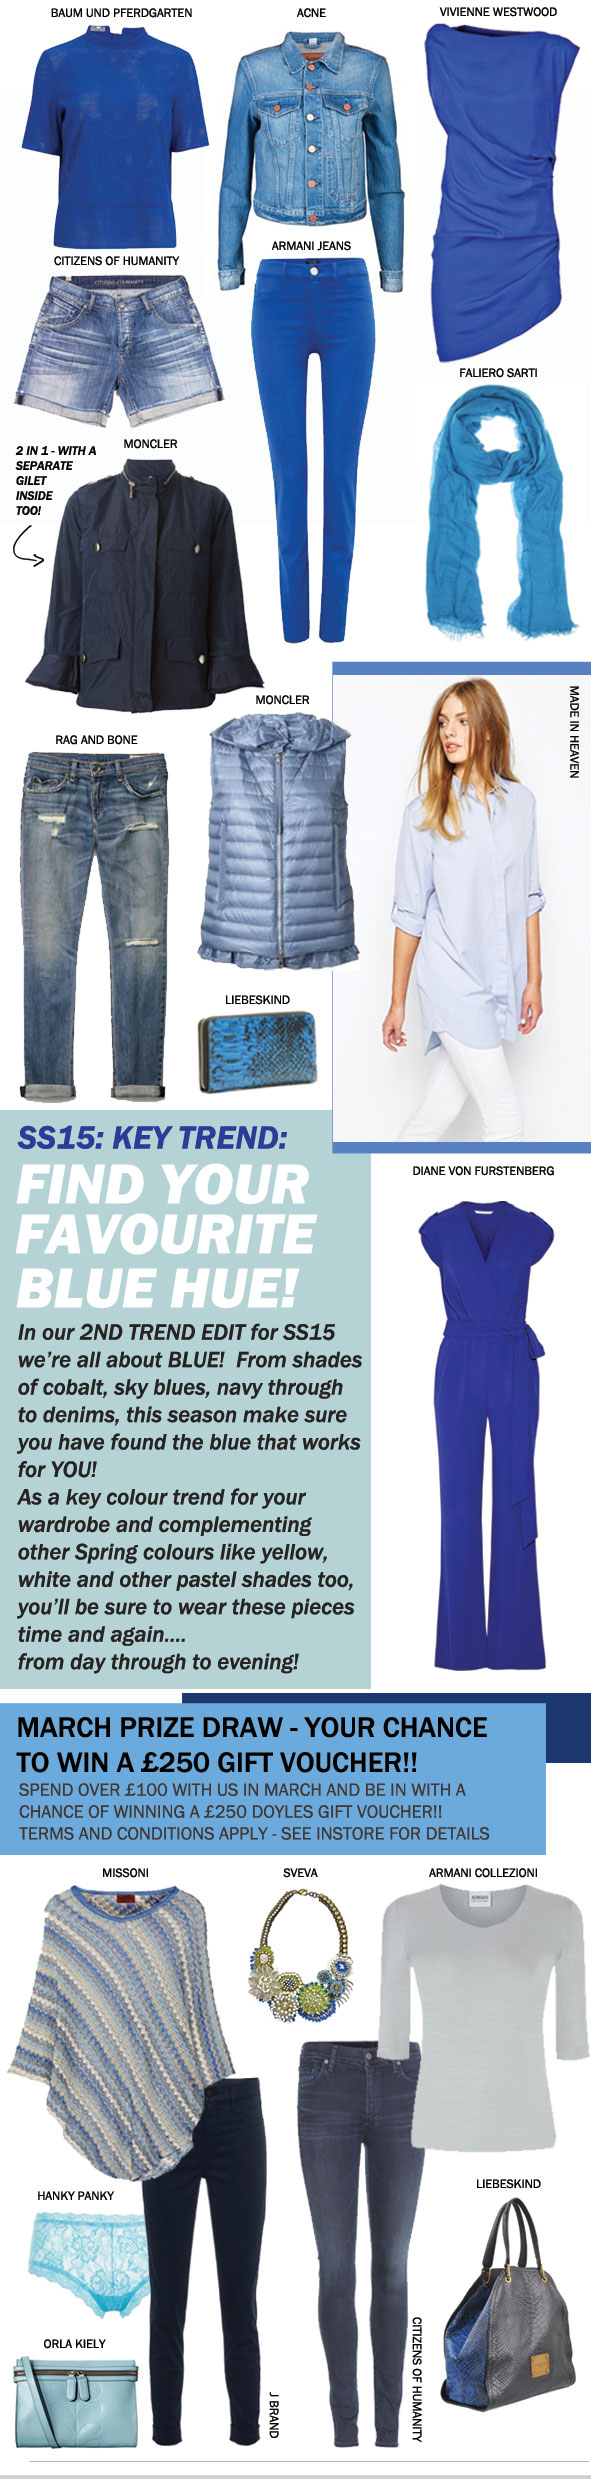 ss15-blue-hue-trend-email_02